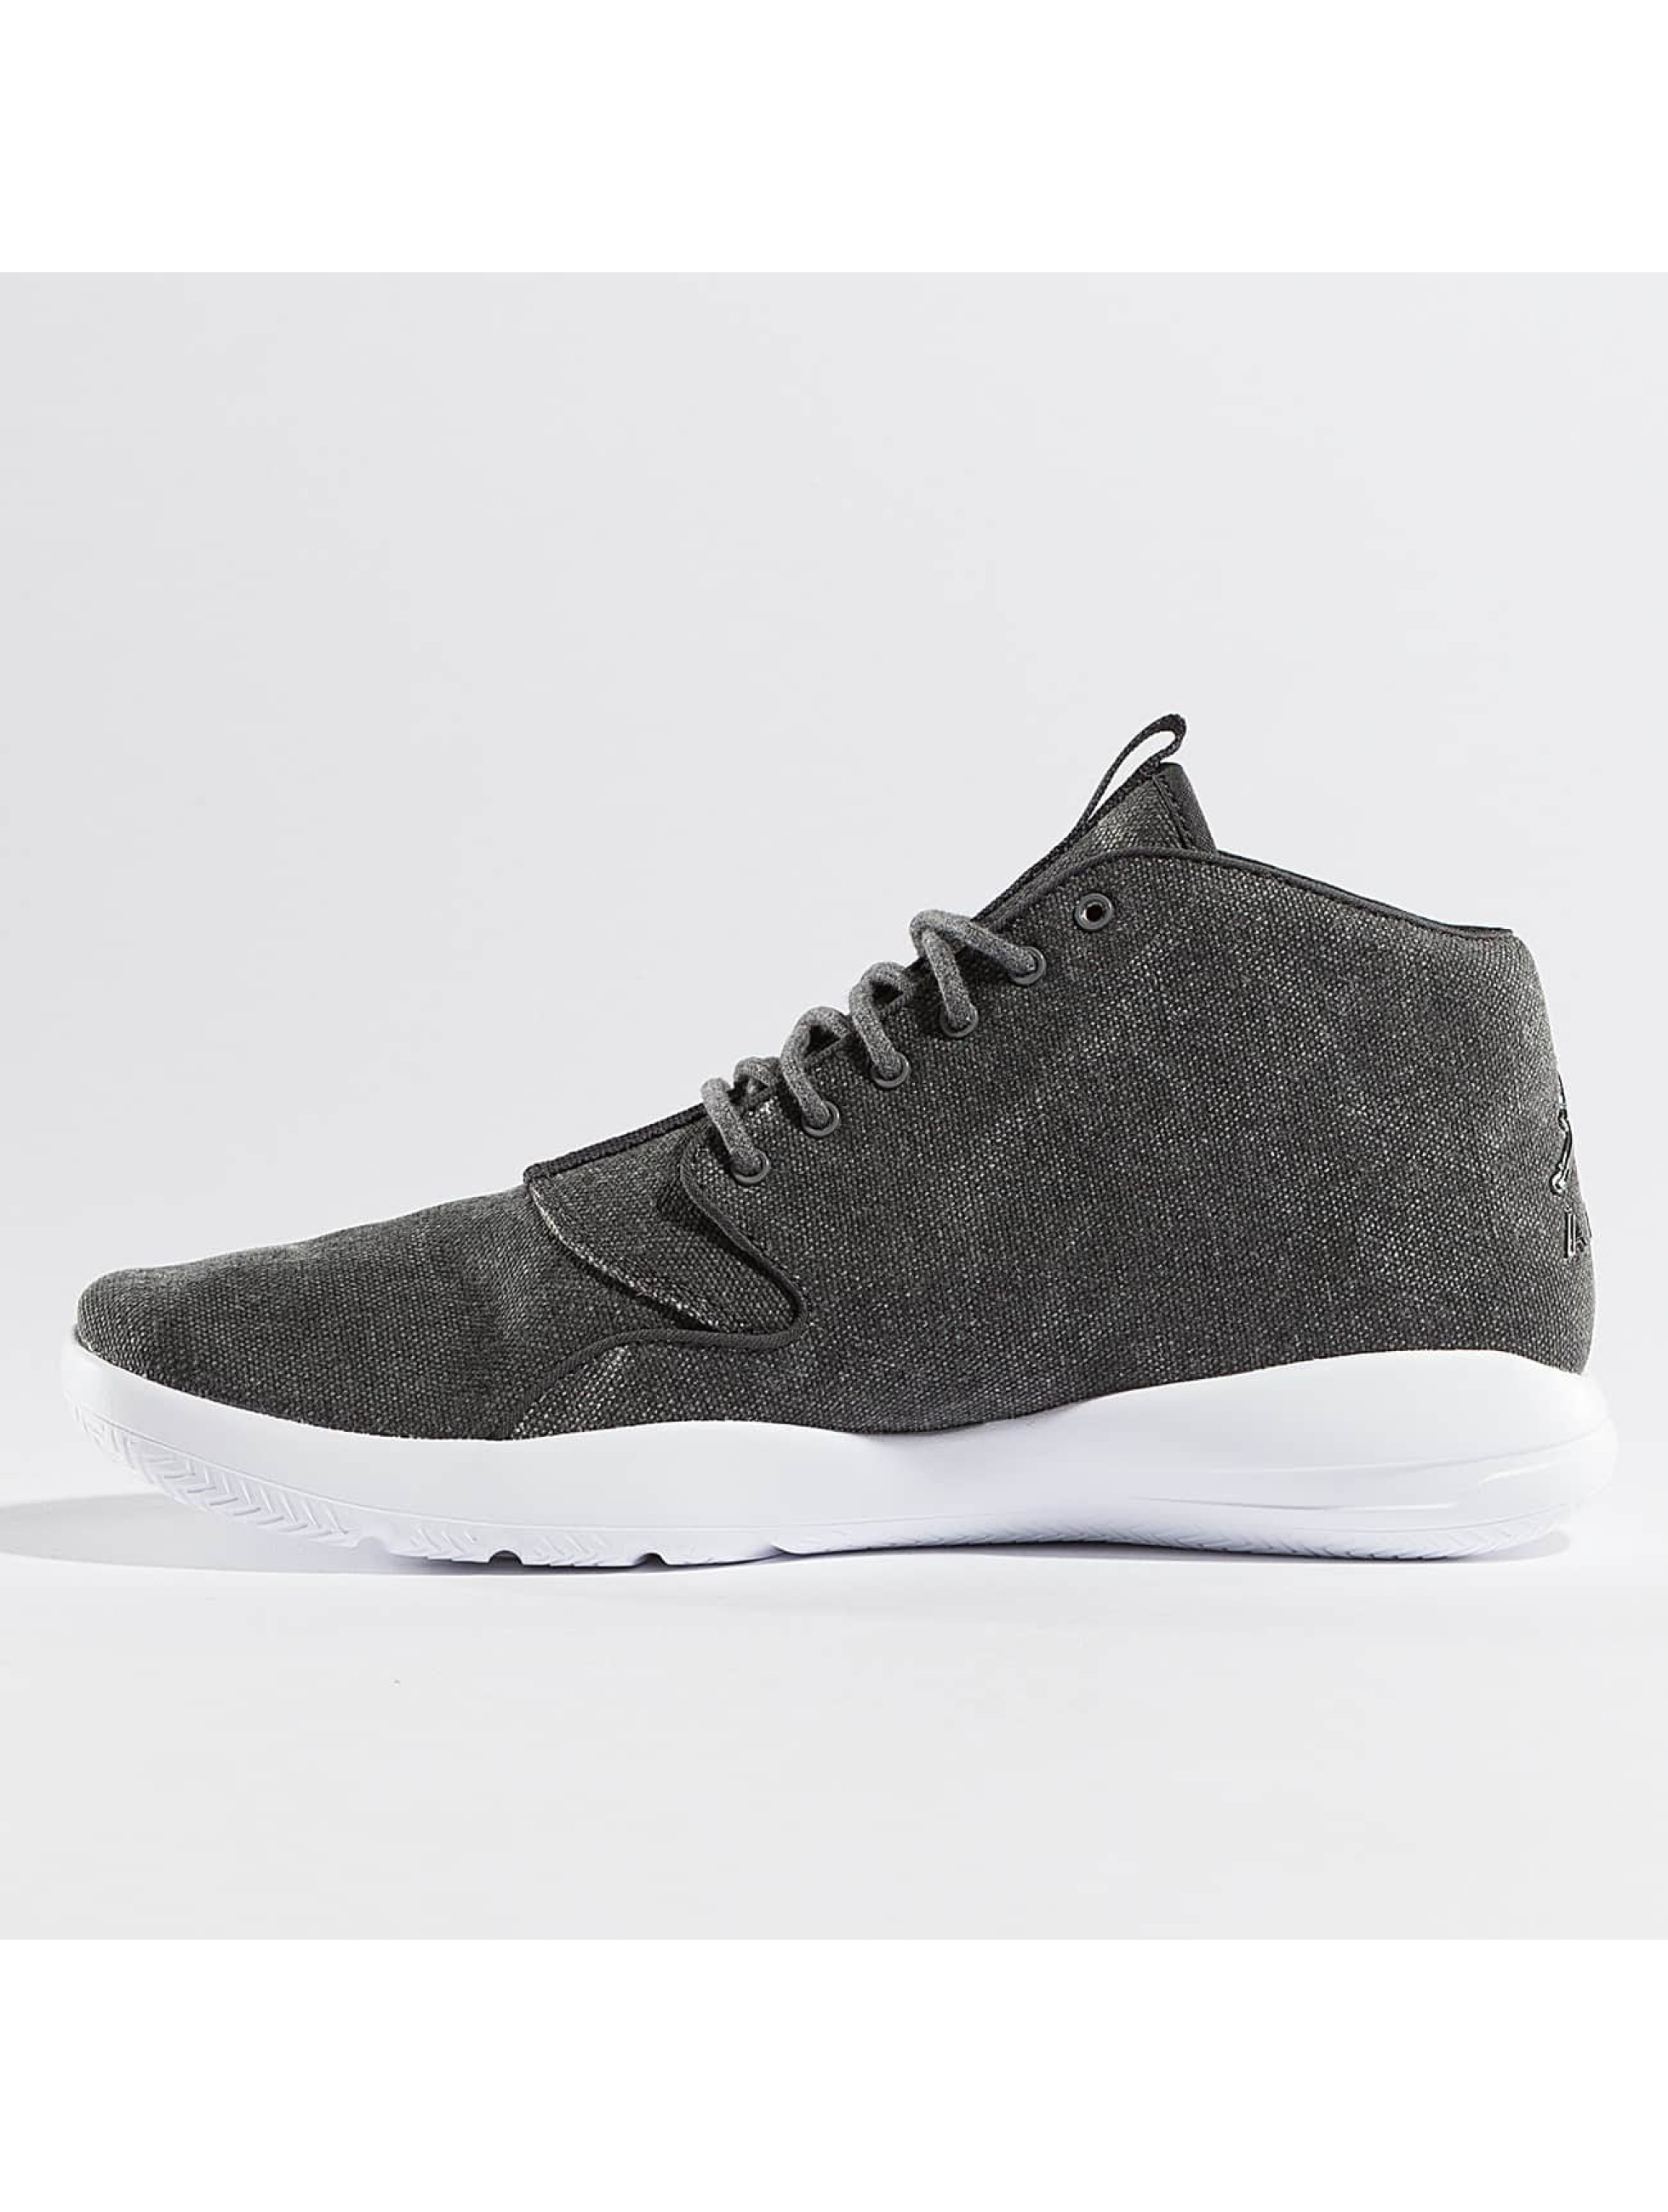 Jordan Sneakers Eclipse Chukka grey